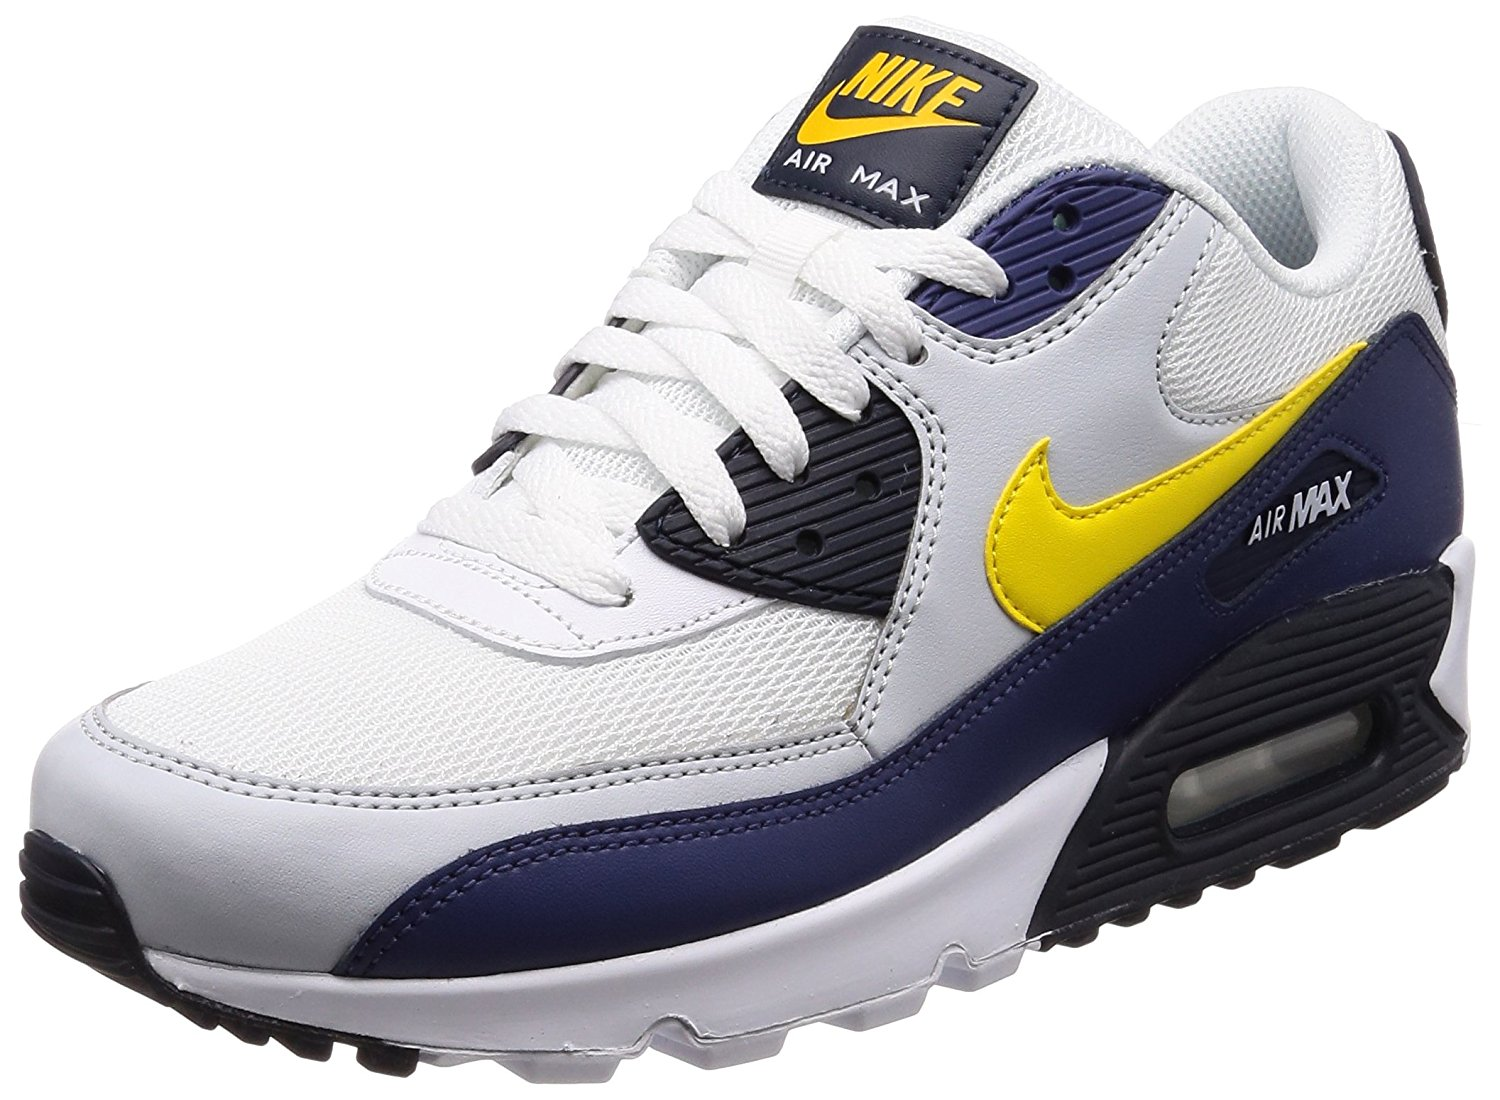 finest selection 71dbd e3547 Nike Air Max 90. Air Max 90 3 4 ...